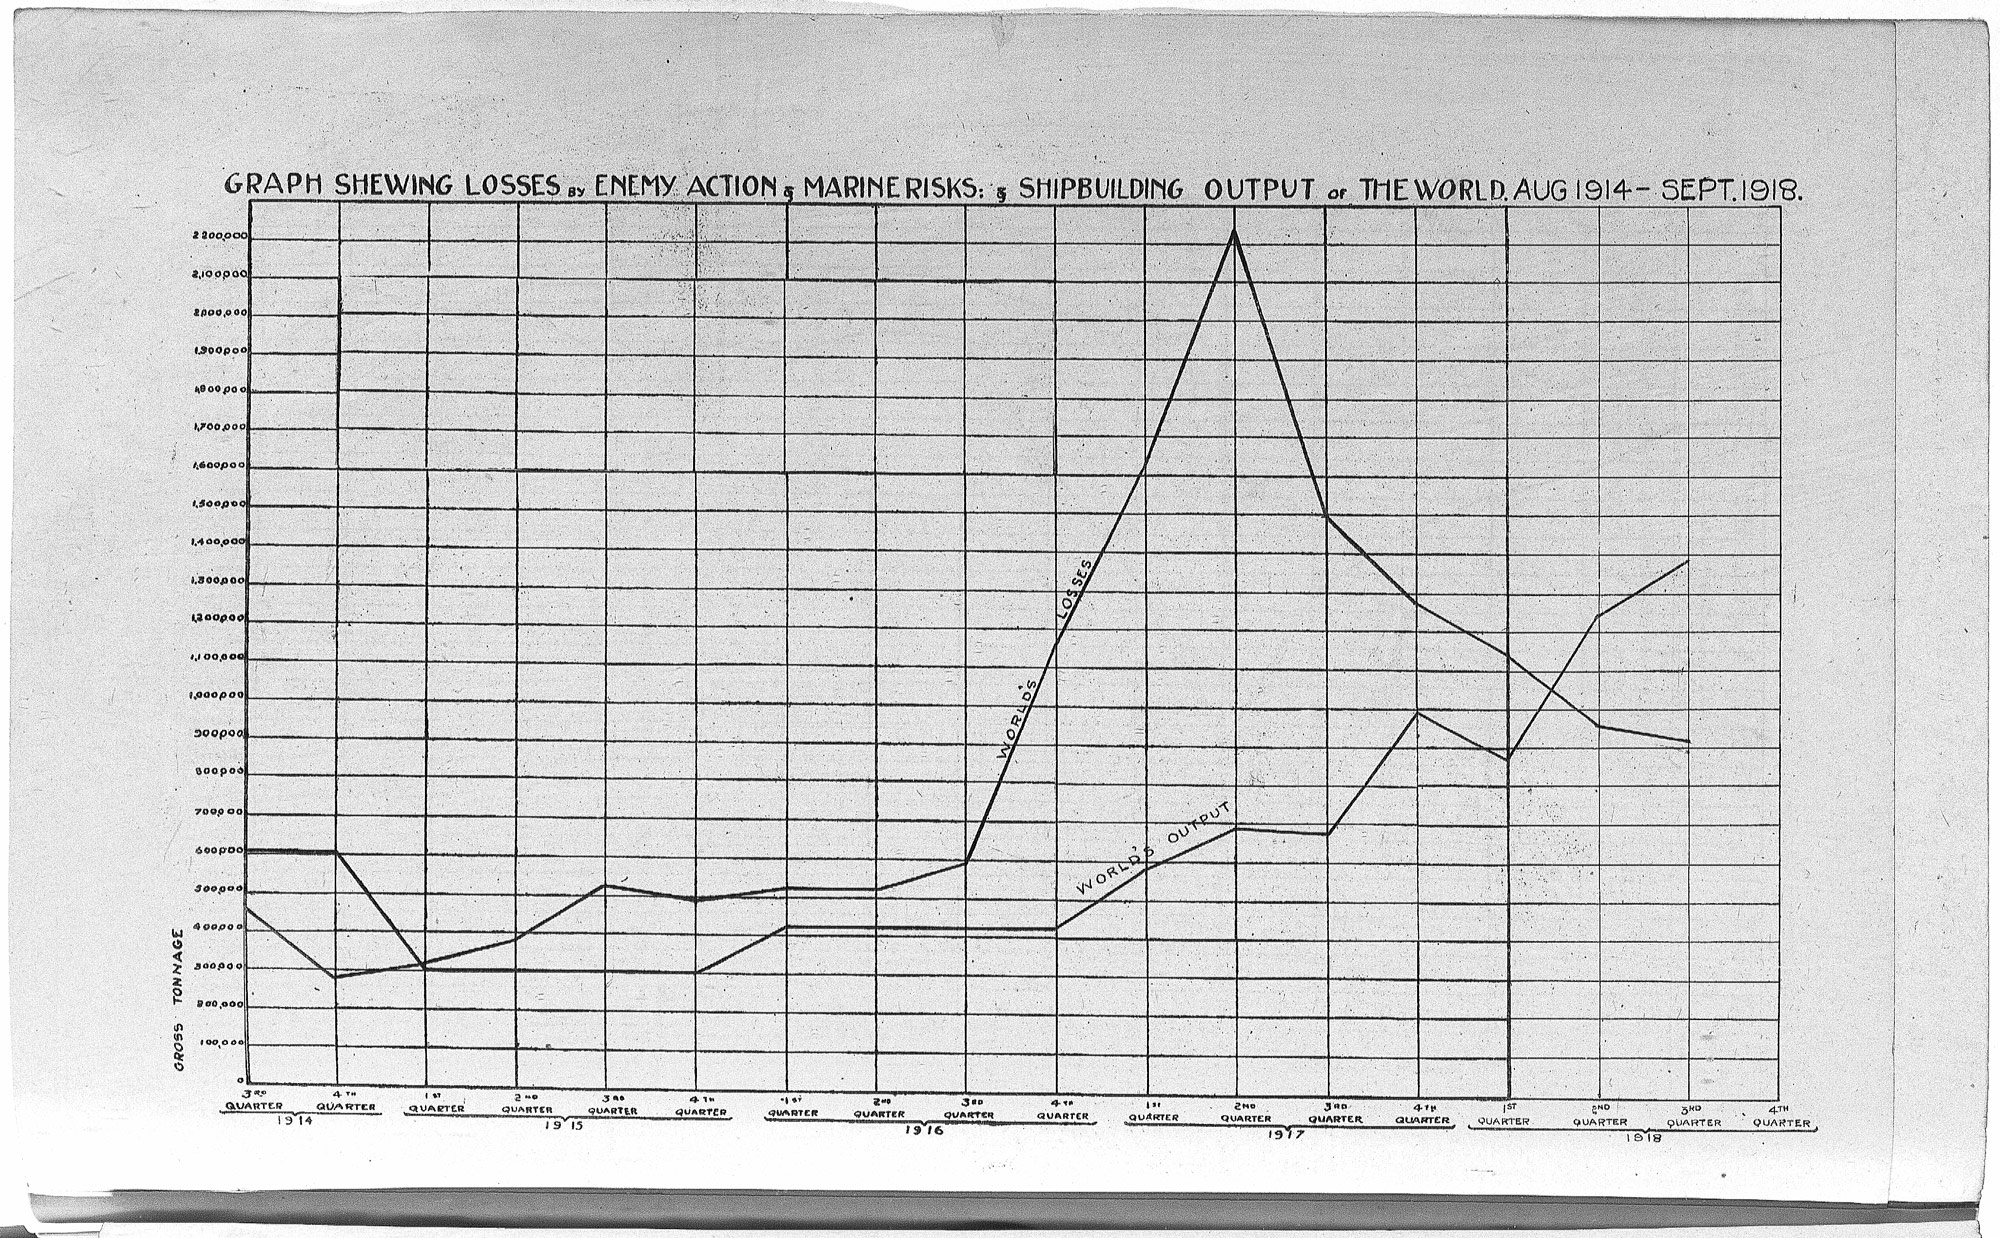 Graph showing the gross tonnage lost by enemy action and marine risks over the course of the war.